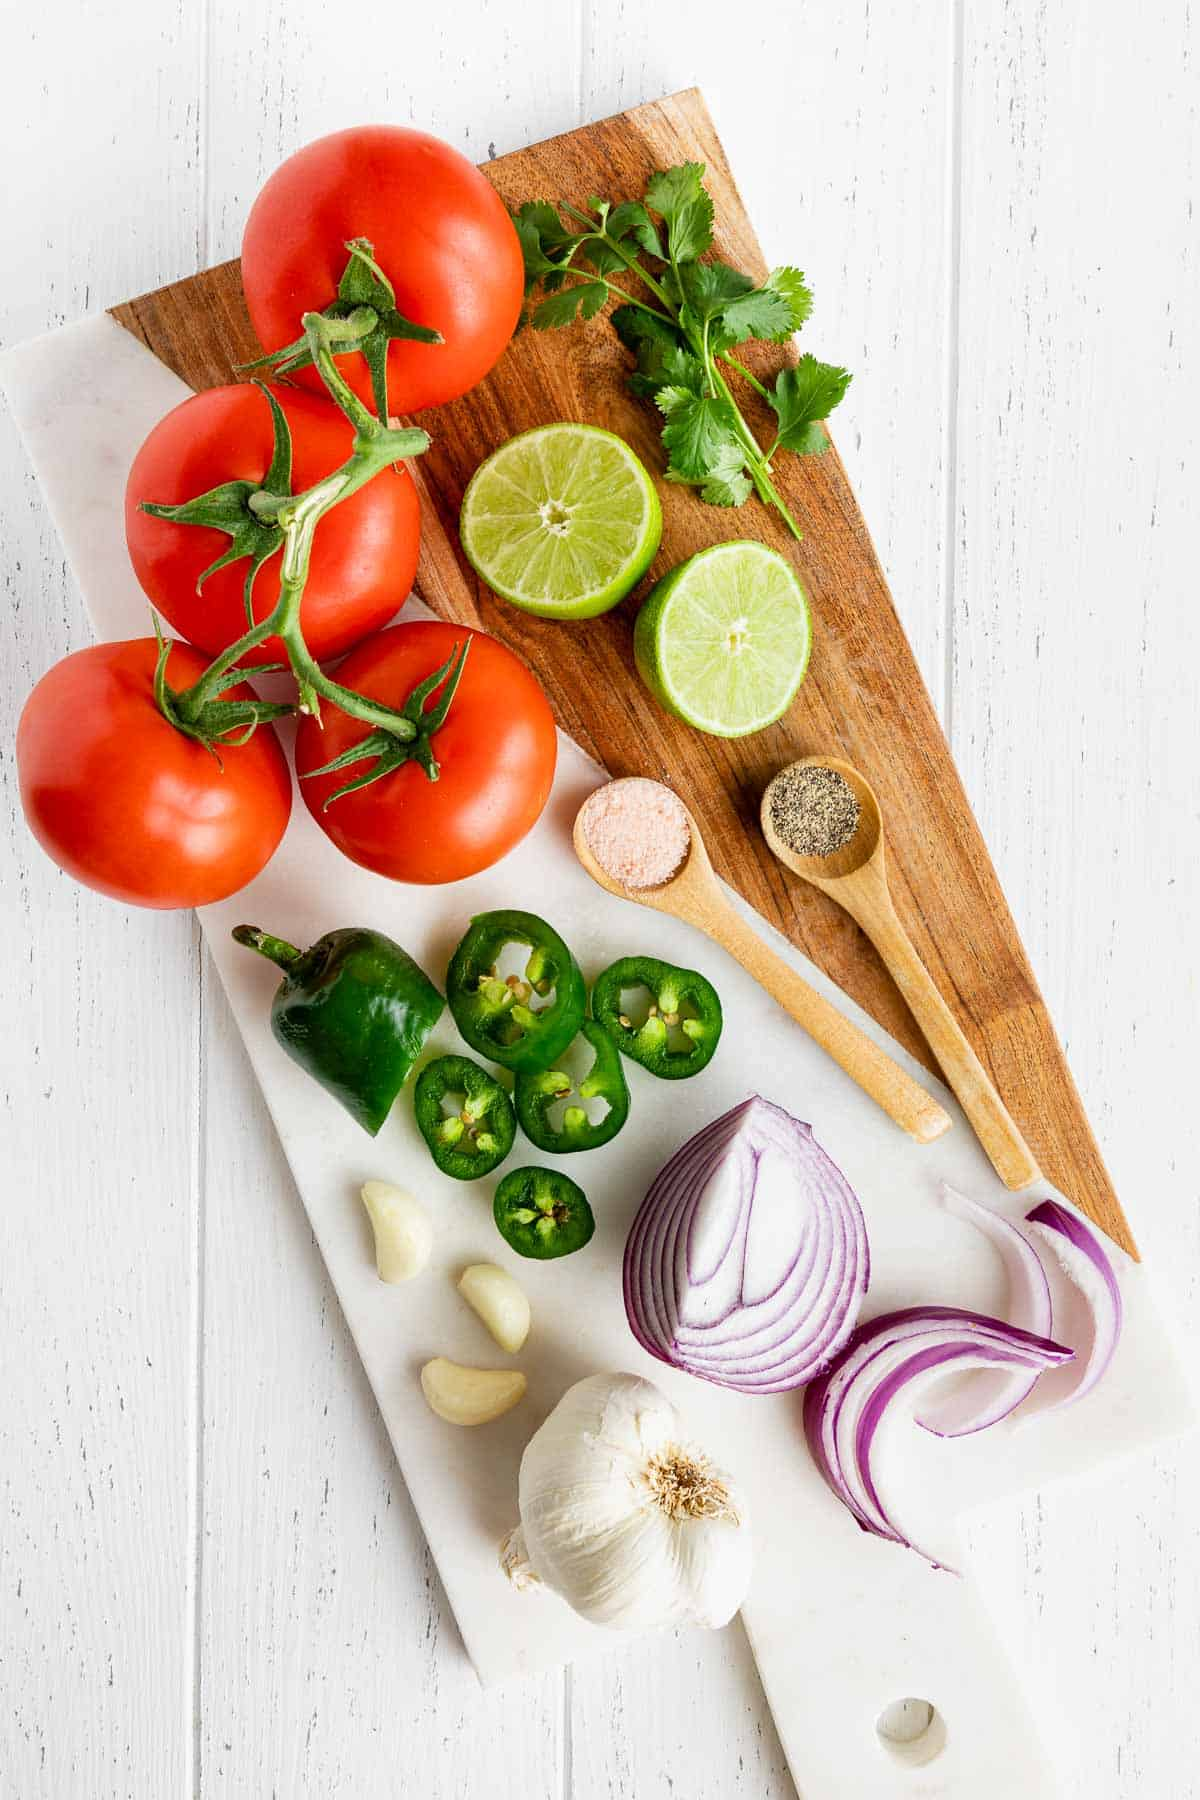 tomatoes, limes, red onion, cilantro, garlic, and jalapeño on a wood and marble serving board